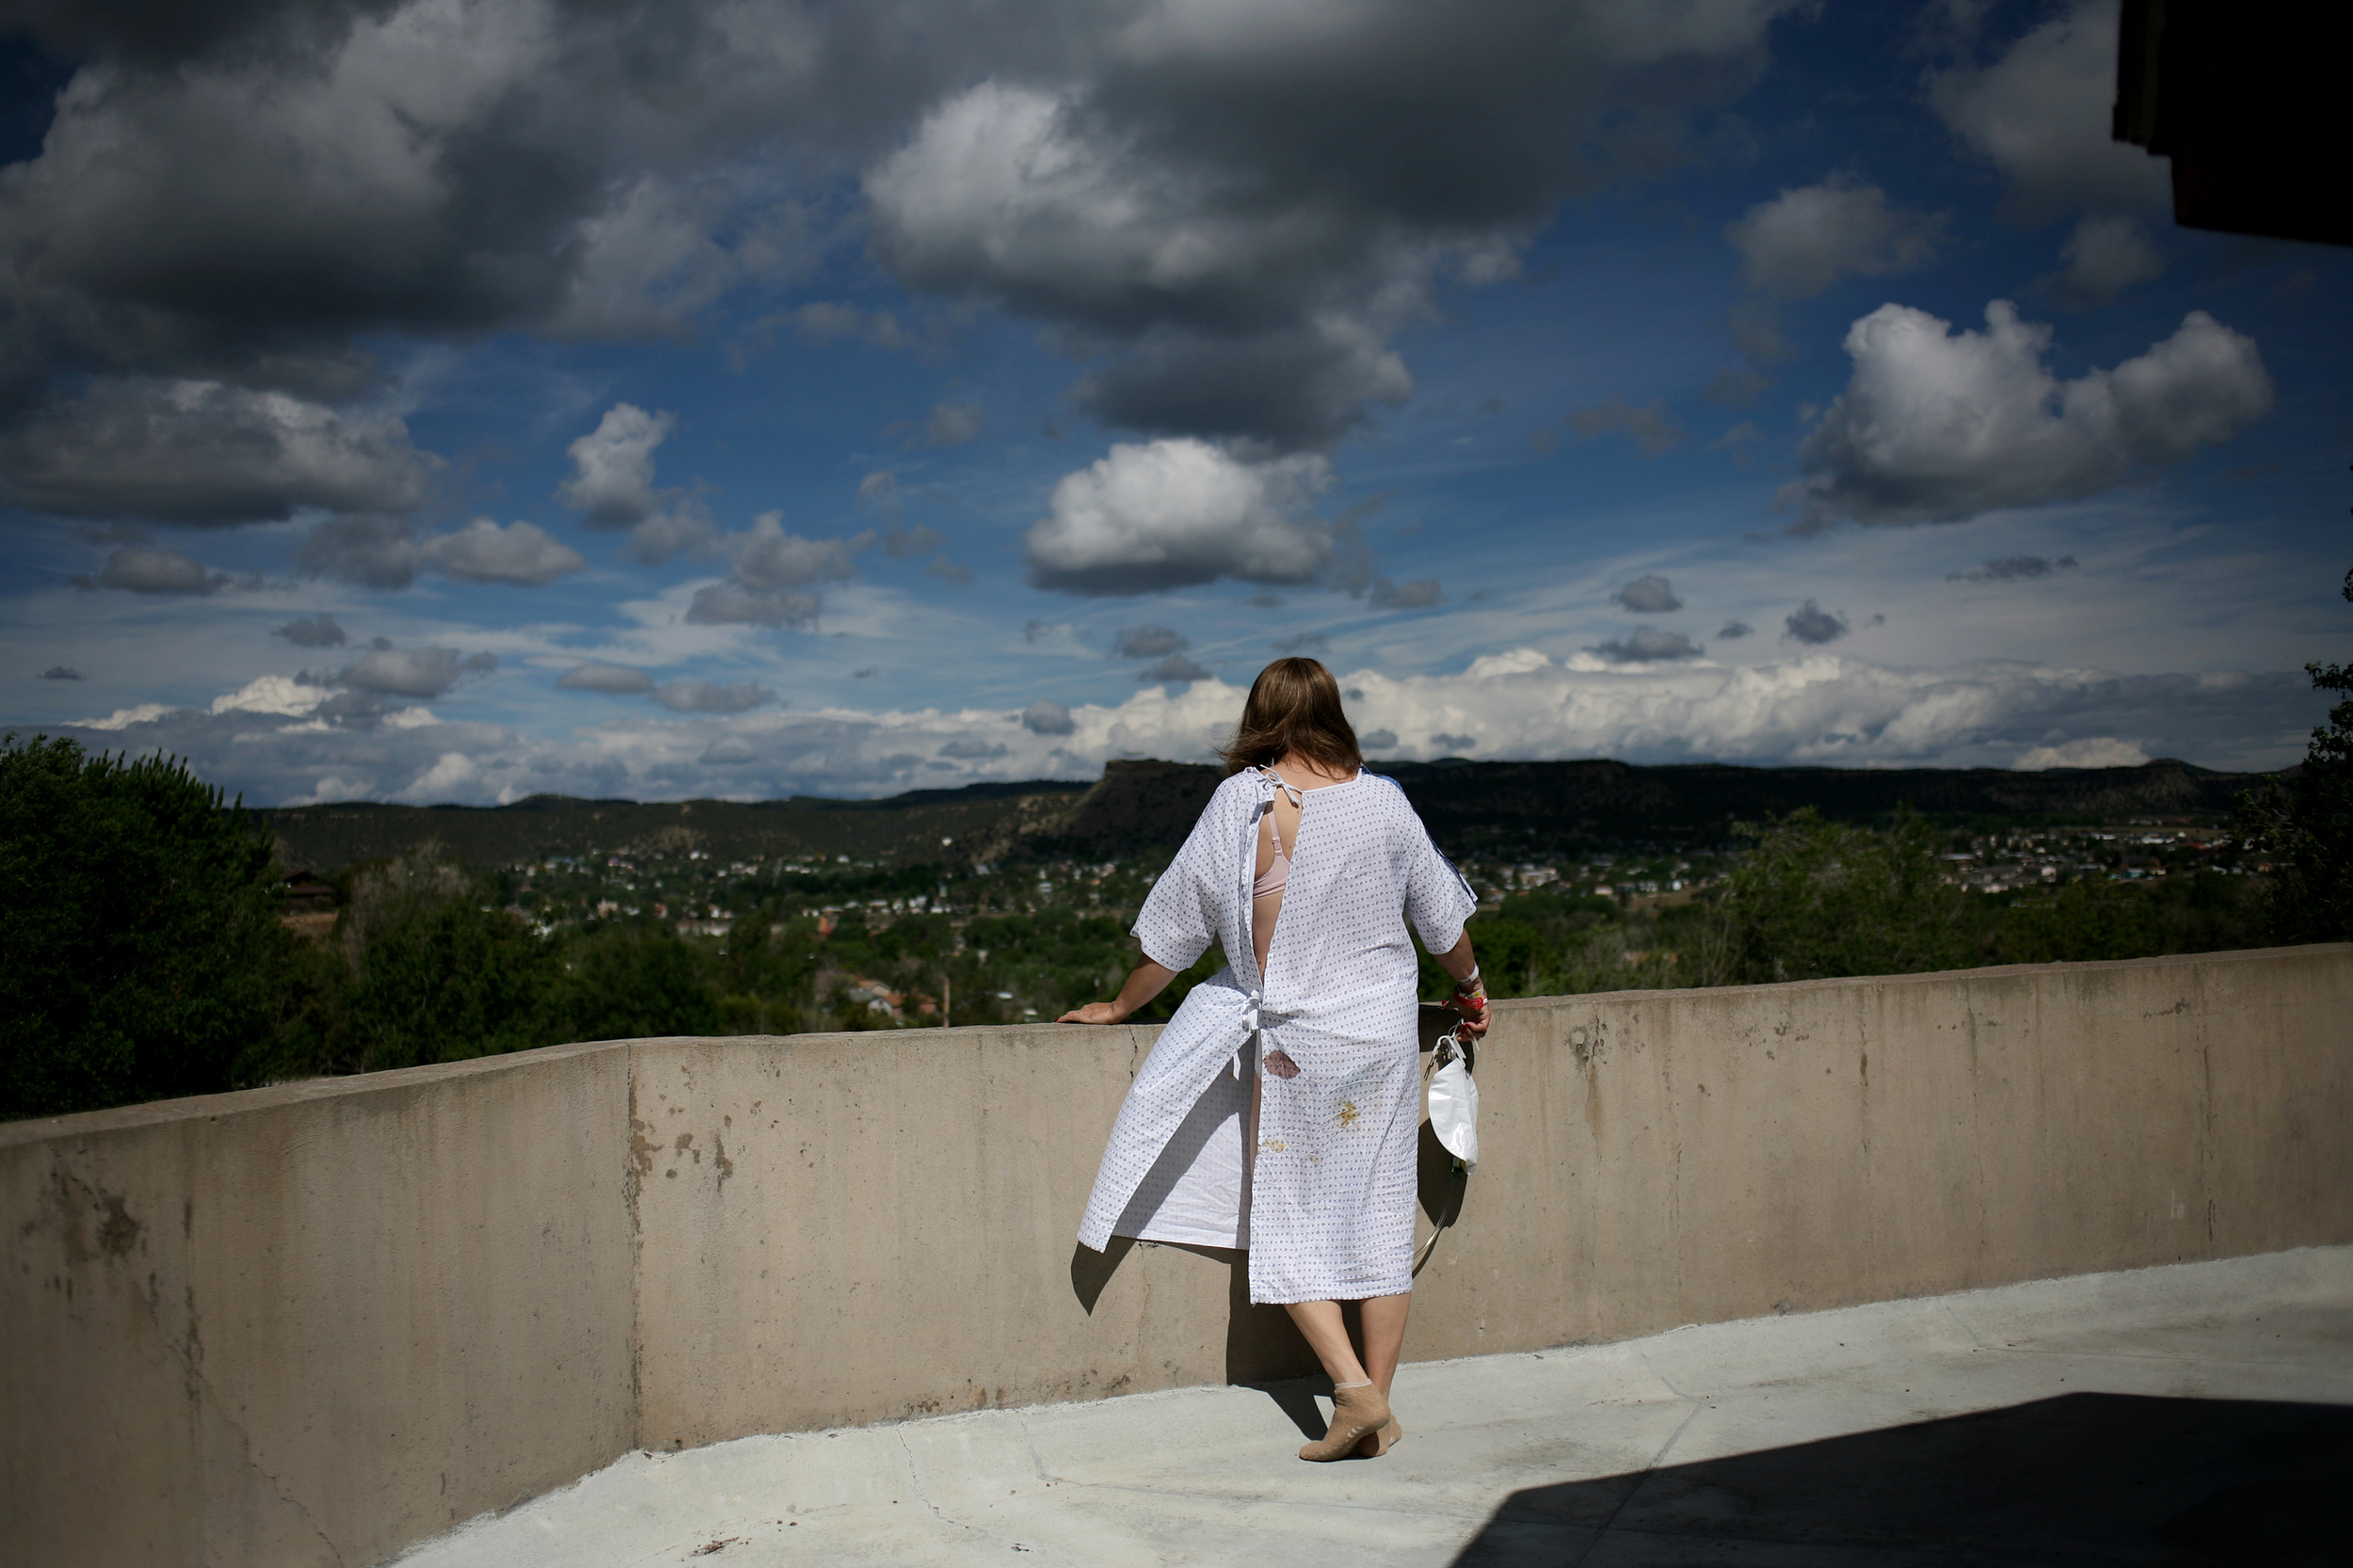 """Elena peers out over the view of Trinidad, Colo., during her recovery at the hospital post-surgery. Many people warned her that transitioning from a male to a female will be hard, both physically and emotionally, but she always responds with a big smile. As she explains, the struggles she may face because of her choices are nothing compared to the feeling of freedom to finally be herself.  """"I'm overwhelmed every day with the reality of what I'm getting to live right now."""""""